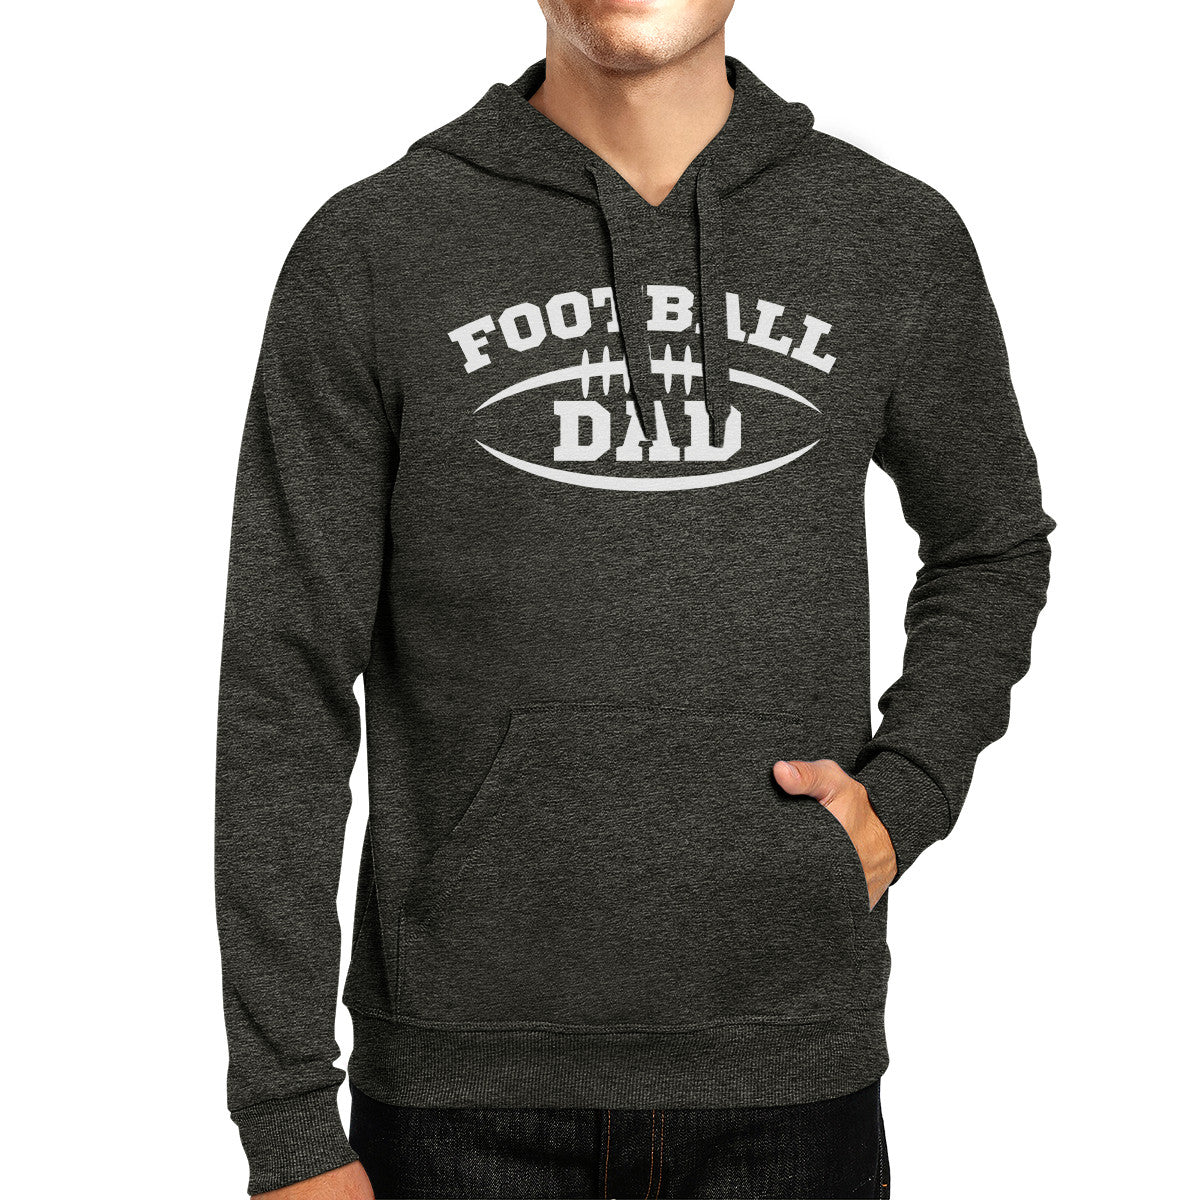 6e0287a26 Football Dad Hoodie Unisex Graphic Design Hoodie For Football Fan ...